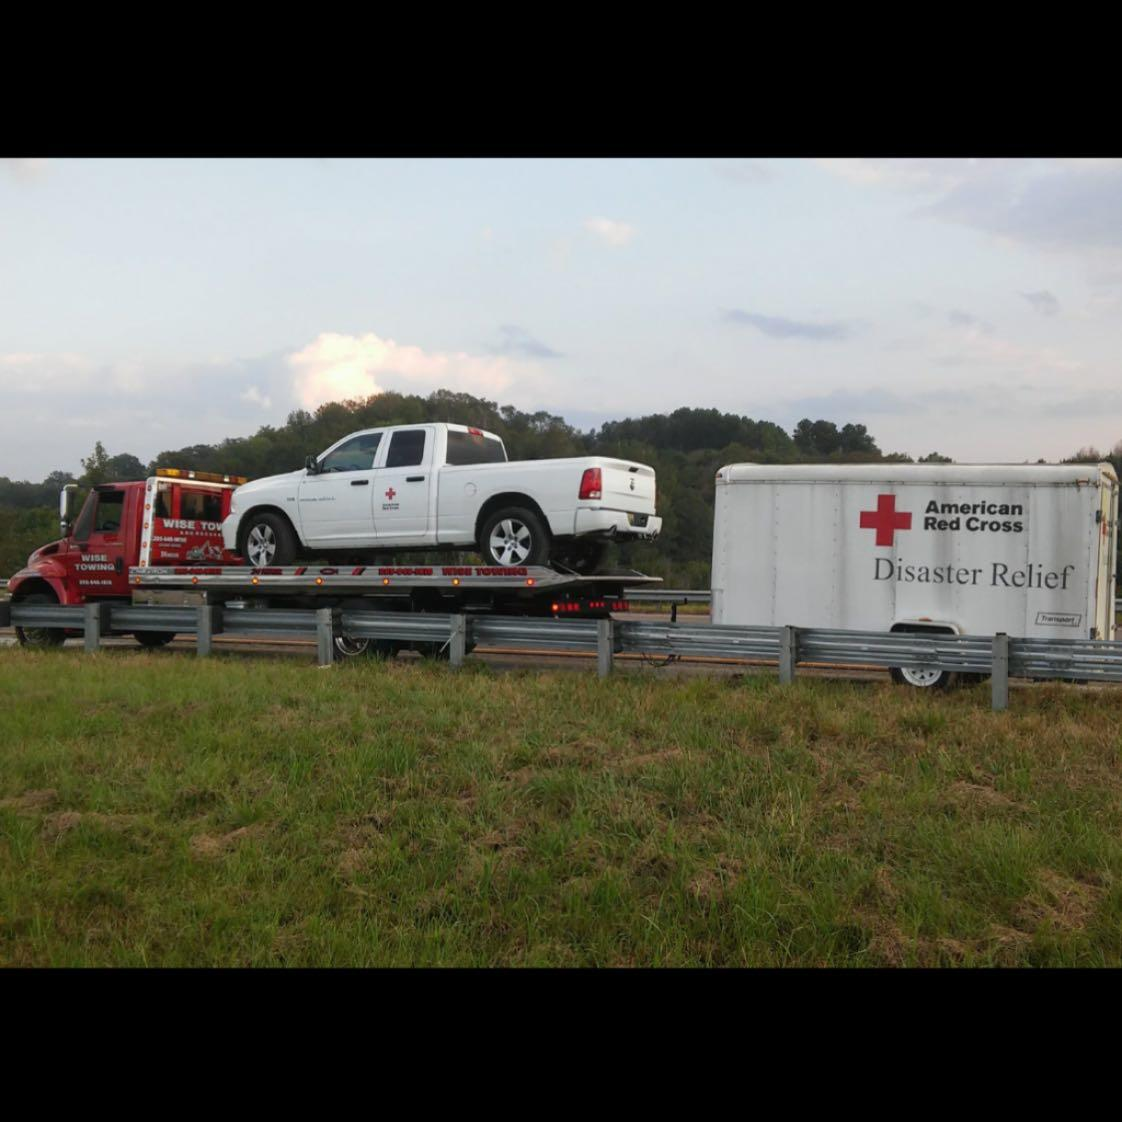 We got to go help out our friends with the American Red Cross Disaster Relief Team today. So thankful for them and what they do to help those in need. So glad they chose to call on us in their time of need. It was an honor getting to help them. Thank you for all you do and God bless! #godisgood #madetoserve #ilovemyjob #redcross #disasterrelief #turningwrenches #towingcars